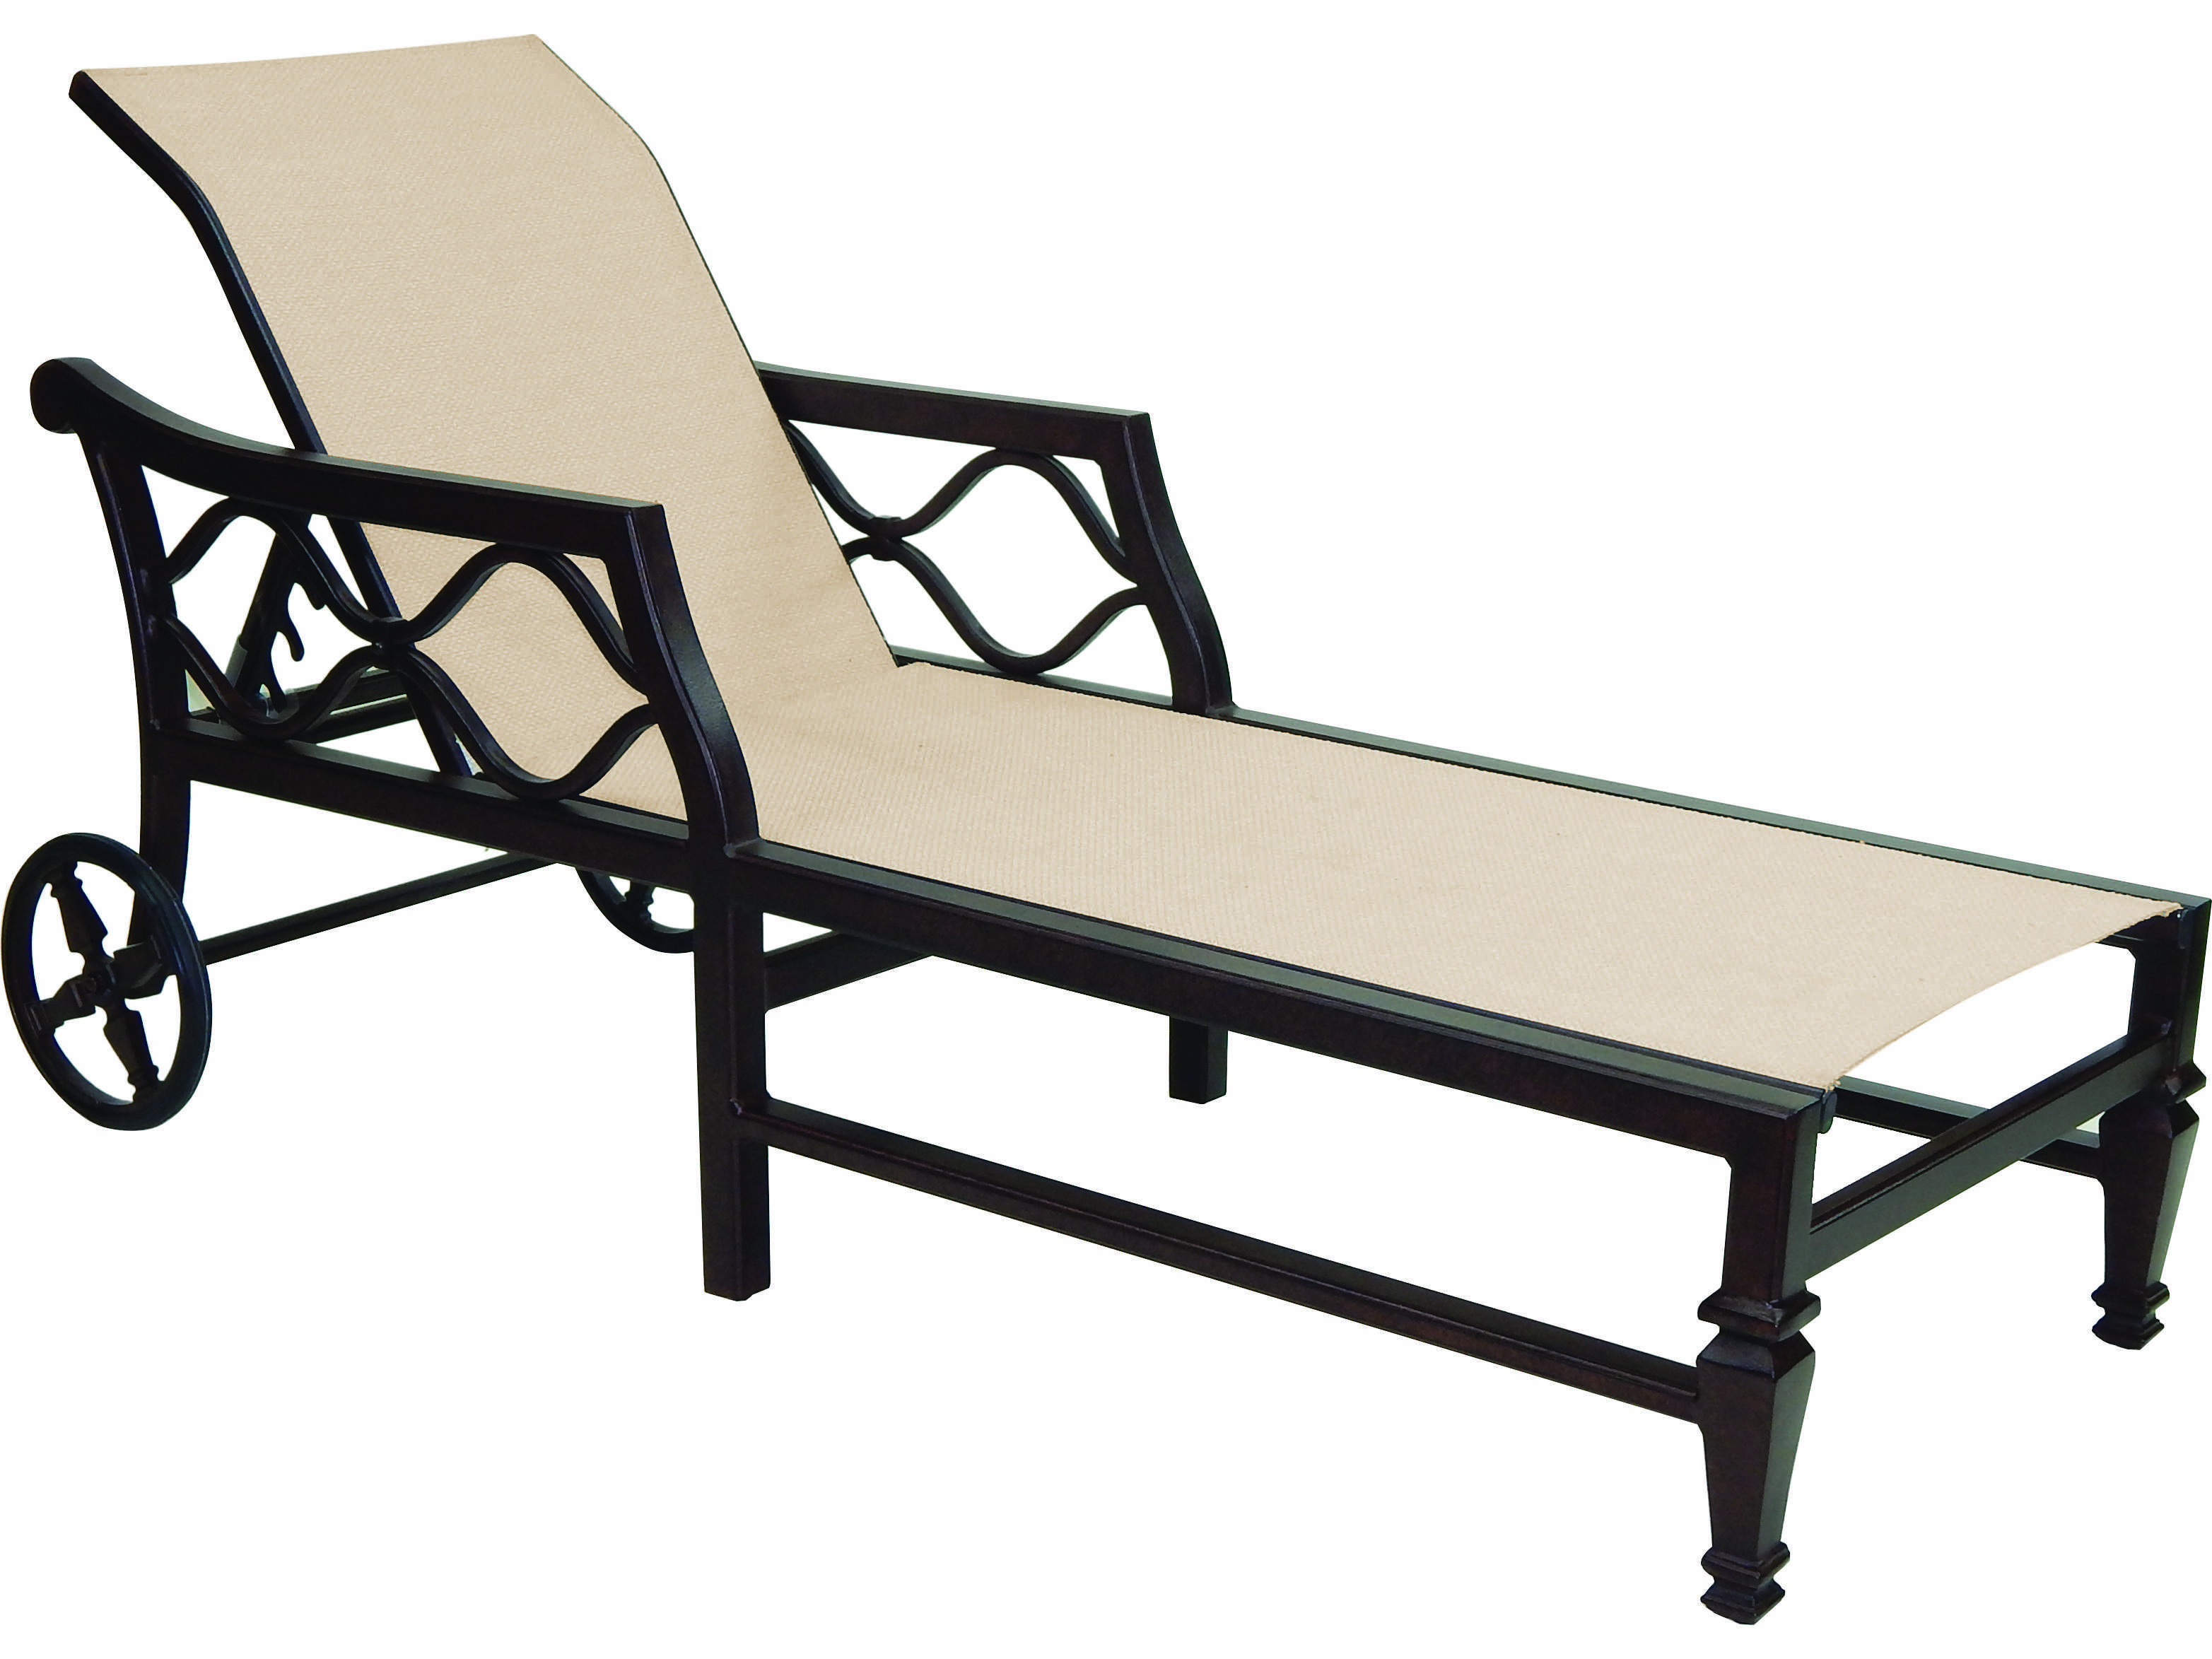 Castelle villa bianca sling cast aluminum adjustable for Cast aluminum chaise lounge